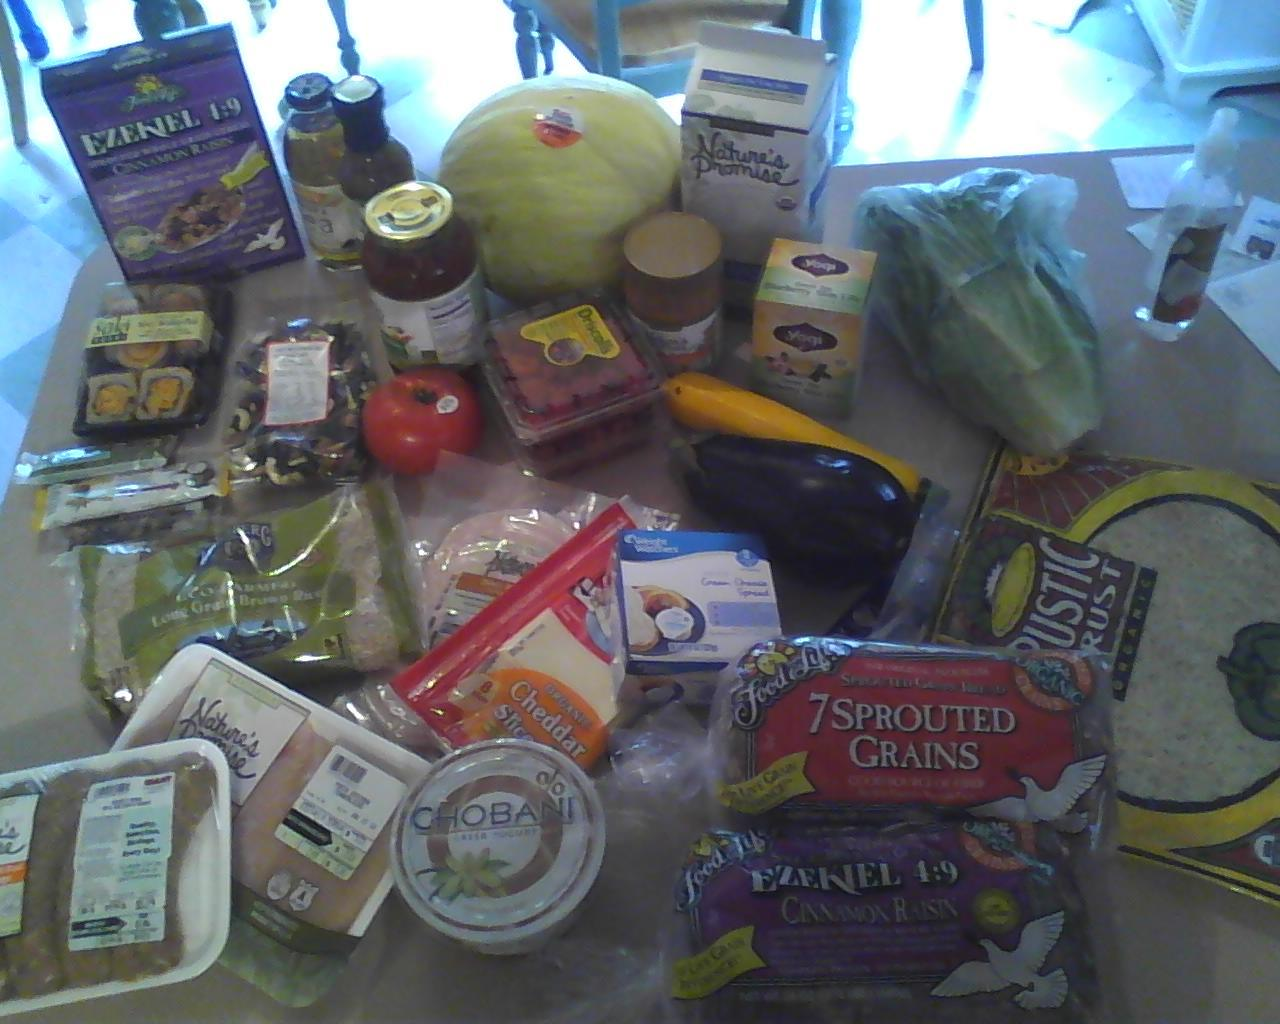 decided to splurge and buy almost all organic when I went grocery shopping today